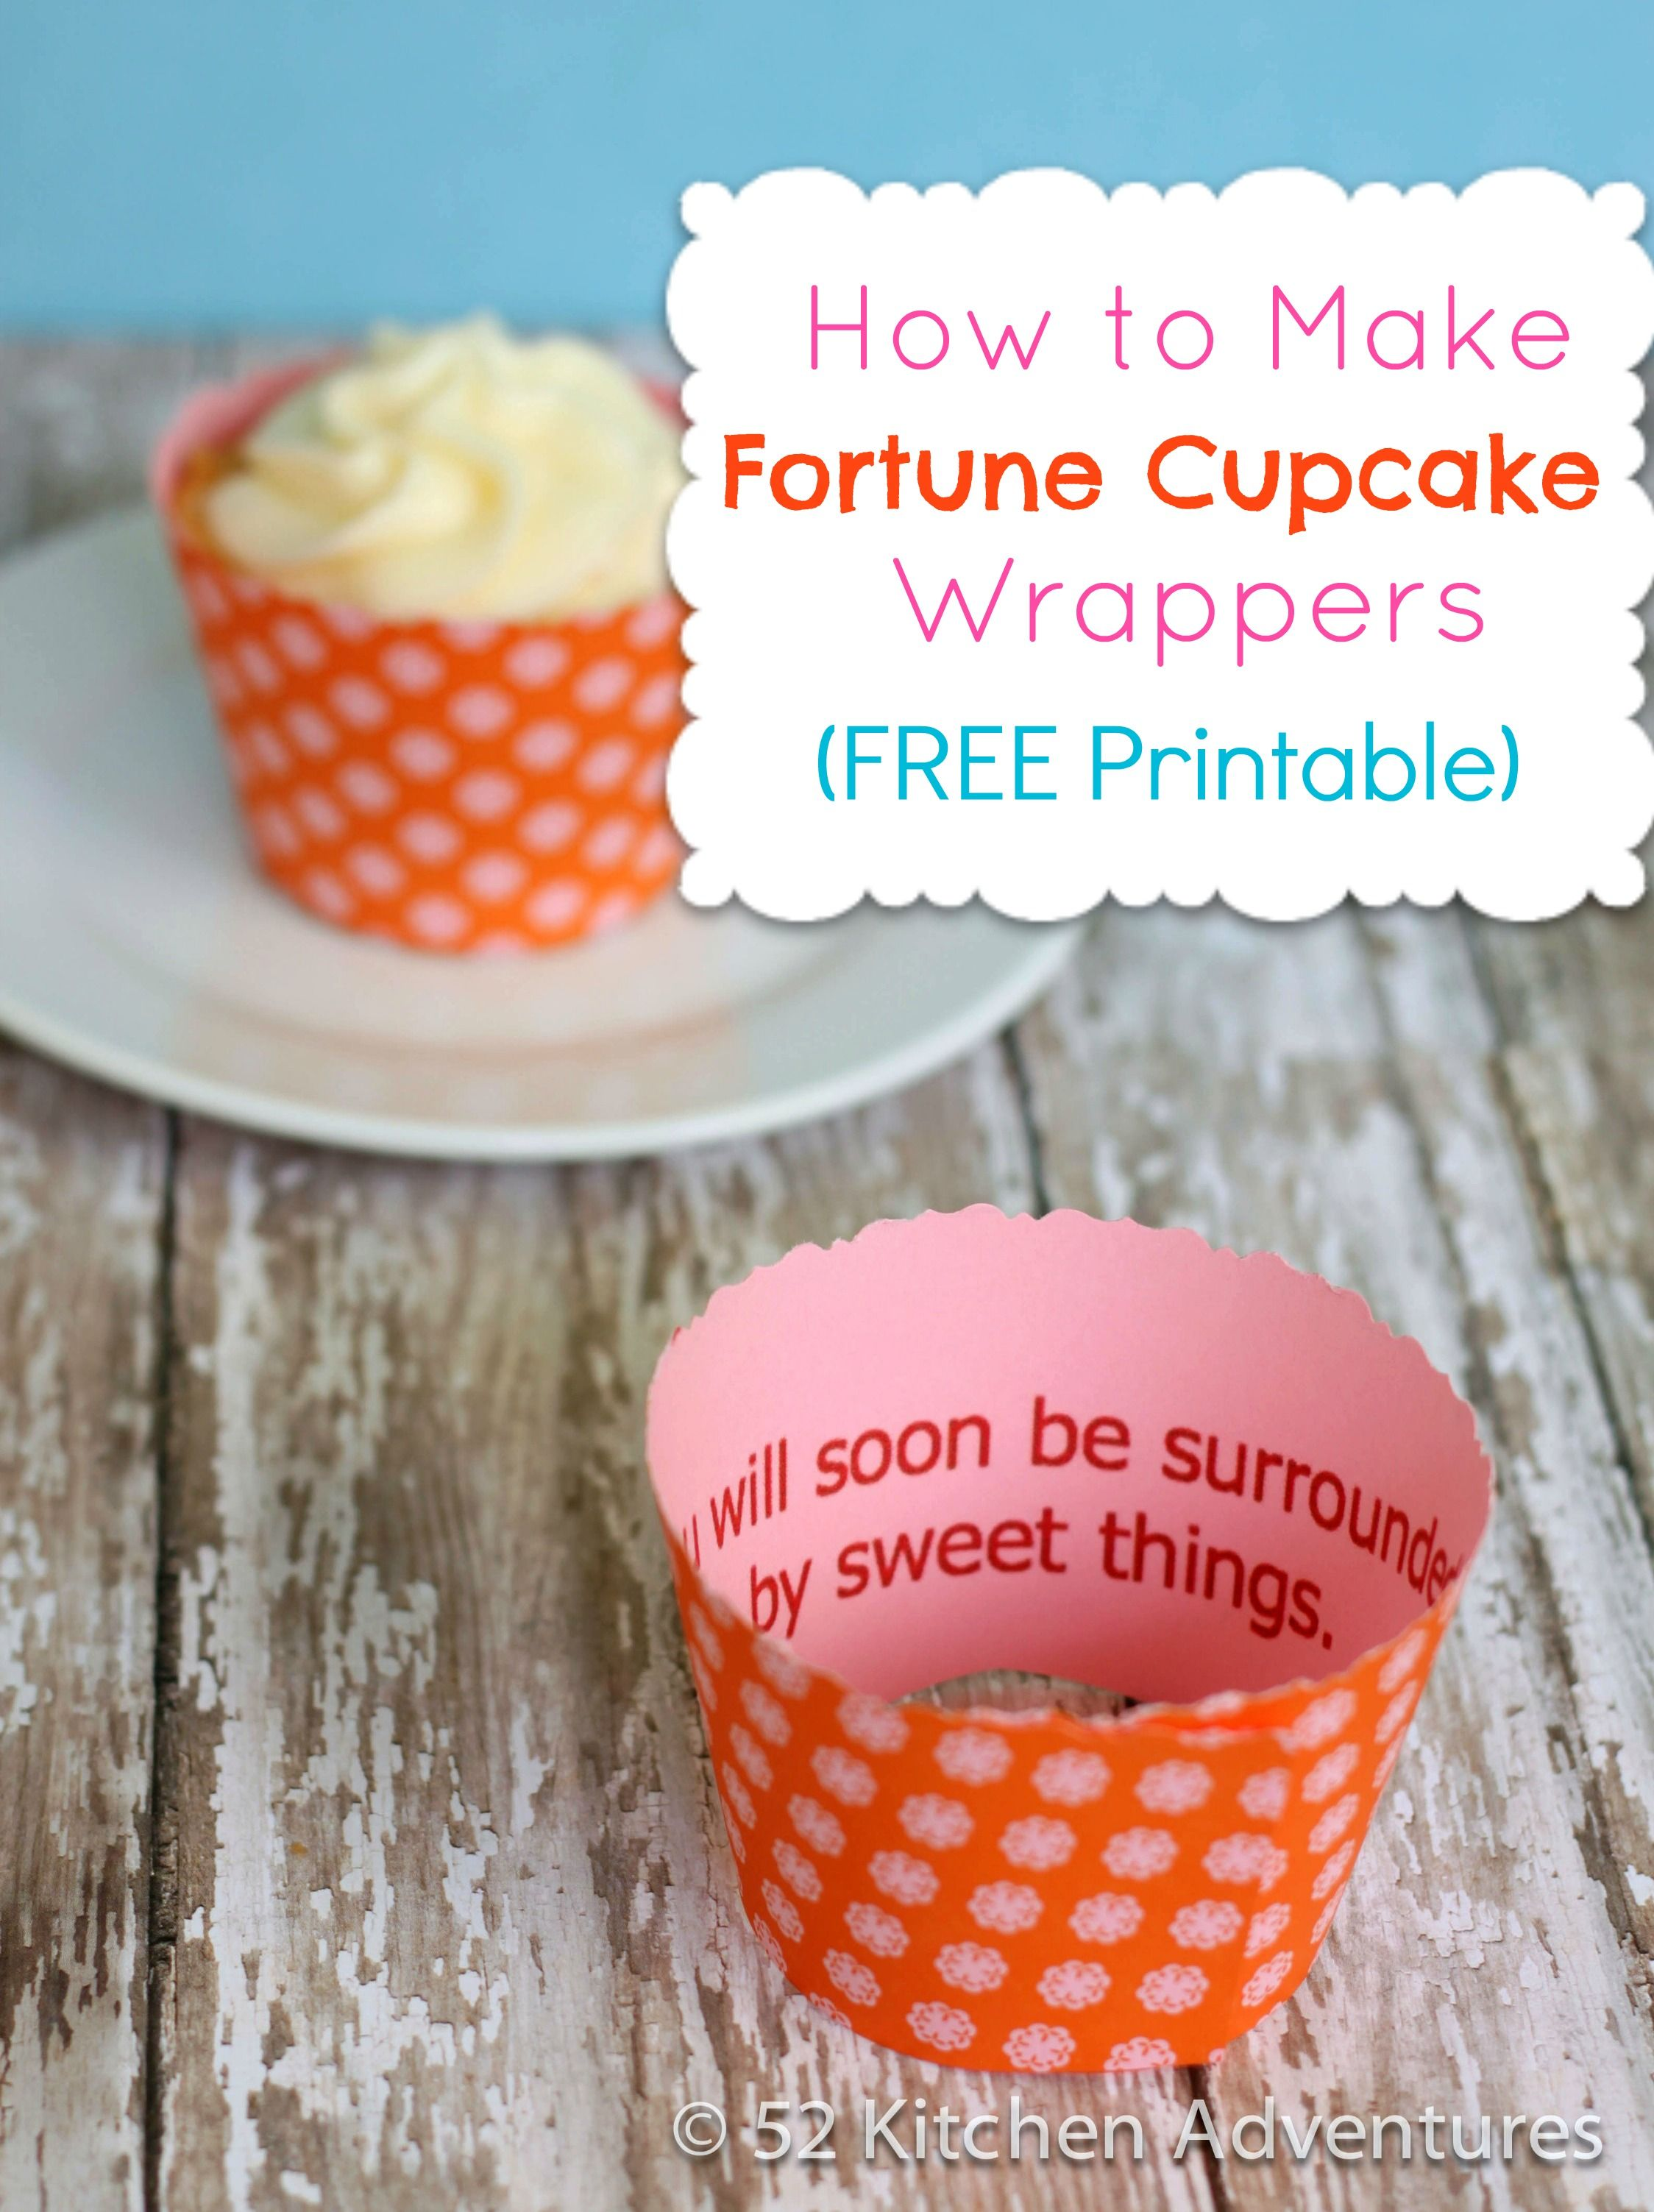 How to Make Fortune Cupcakes (Free Printable!) | Cupcake wrappers ...